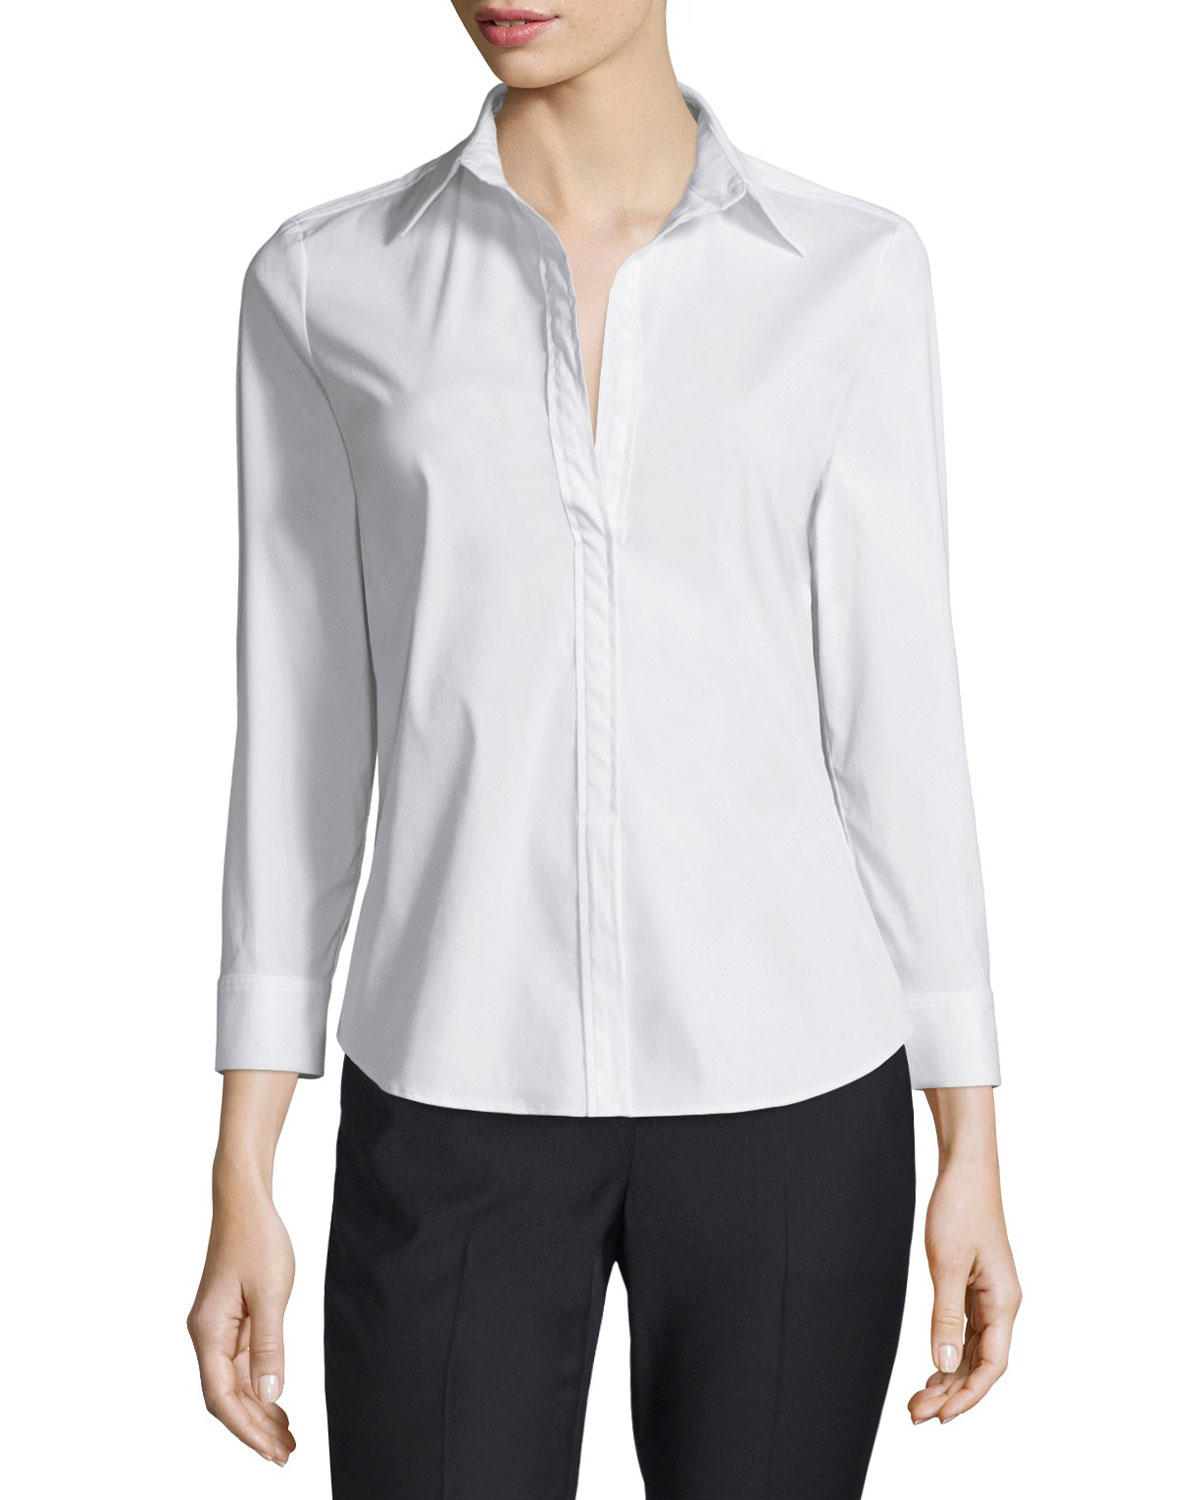 Joklann Long-Sleeve Luxe Shirt, White